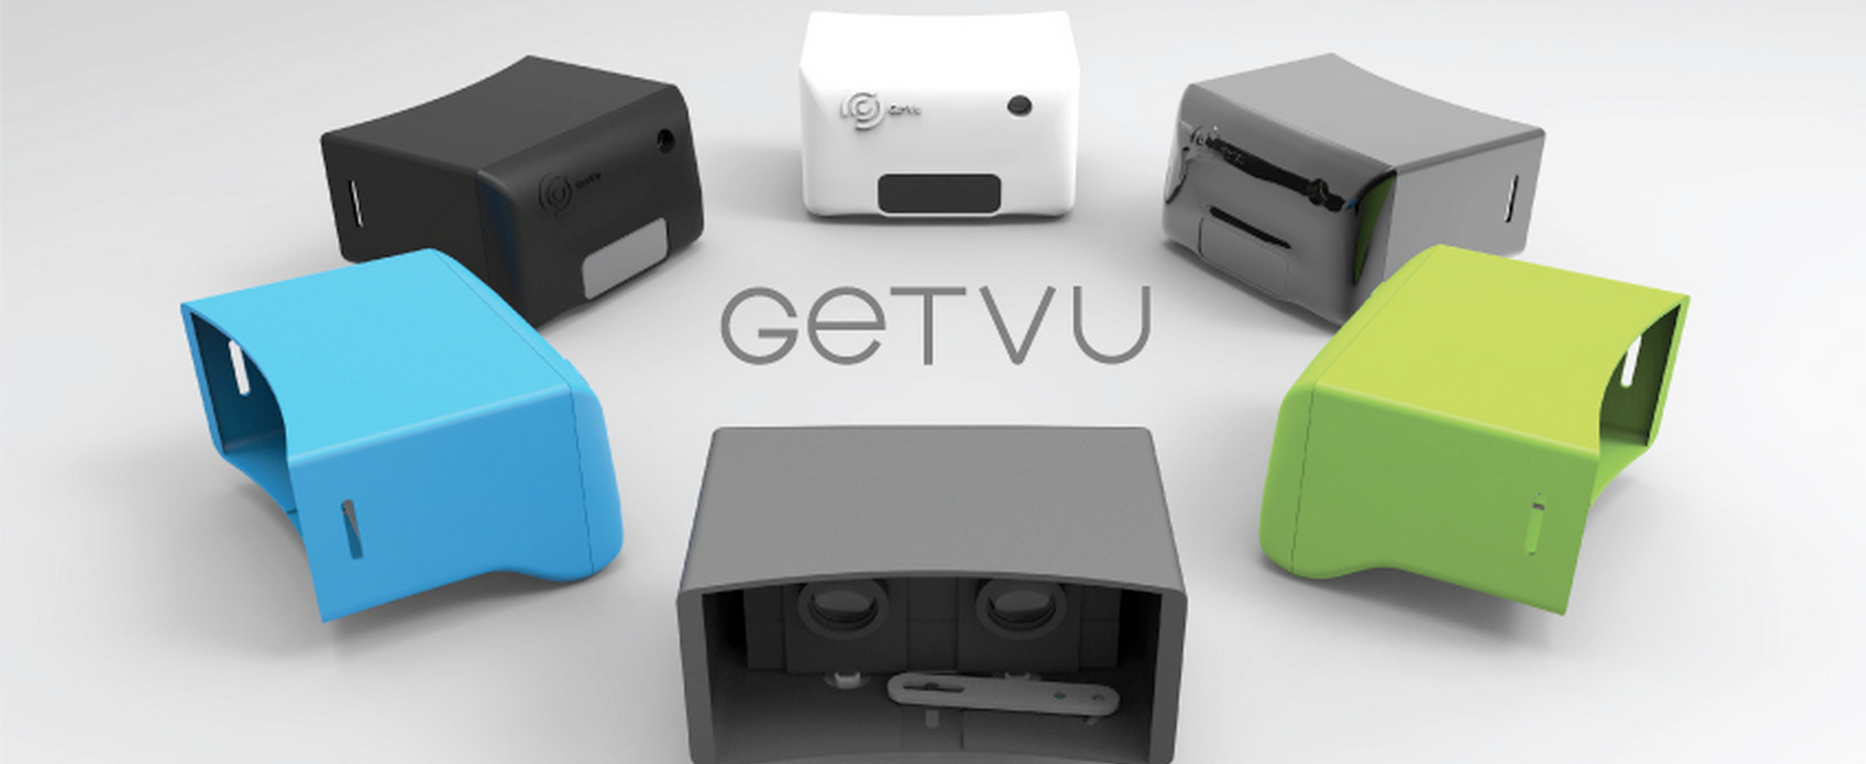 Getvu augmented reality developer kit